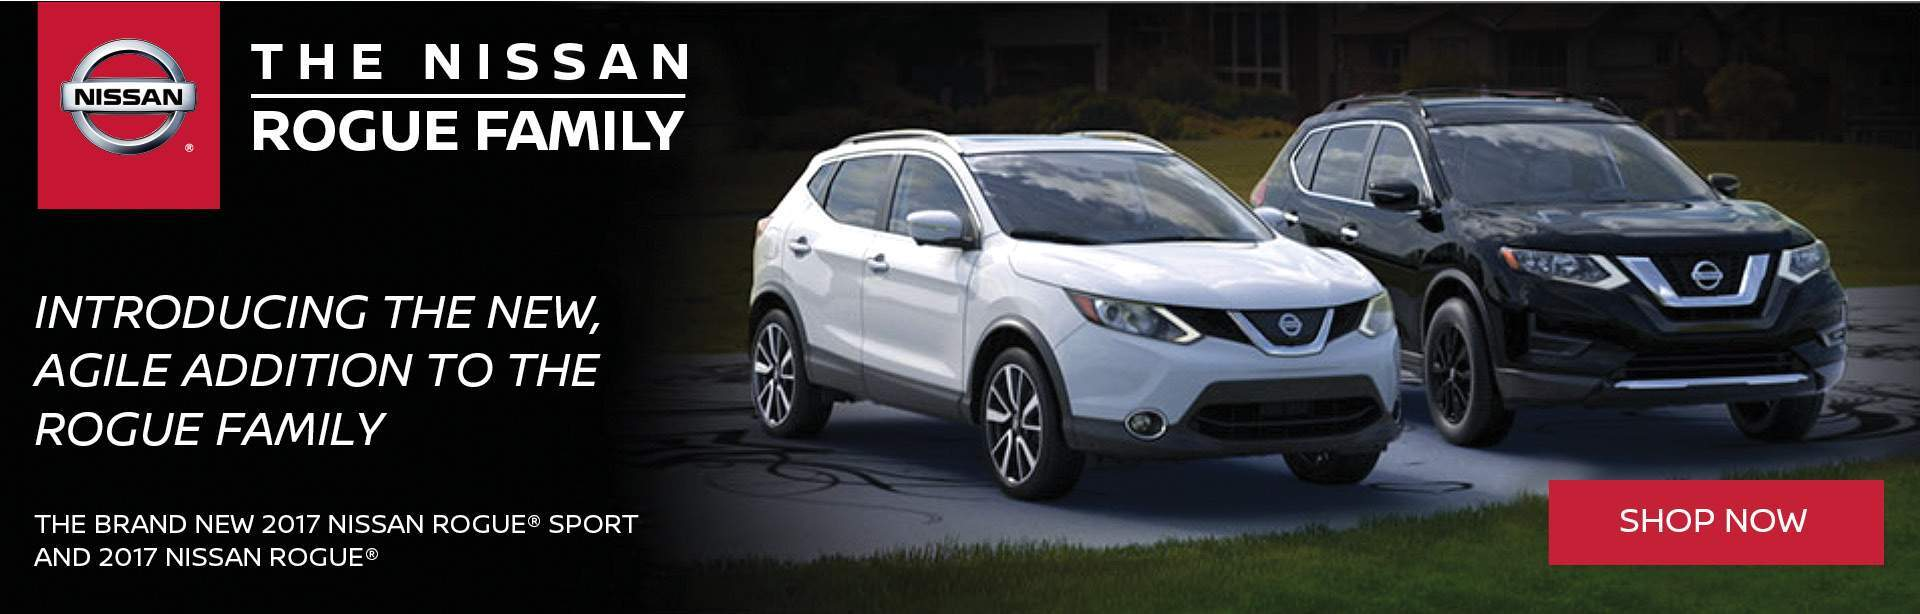 New 2017 rogue and rogue sports